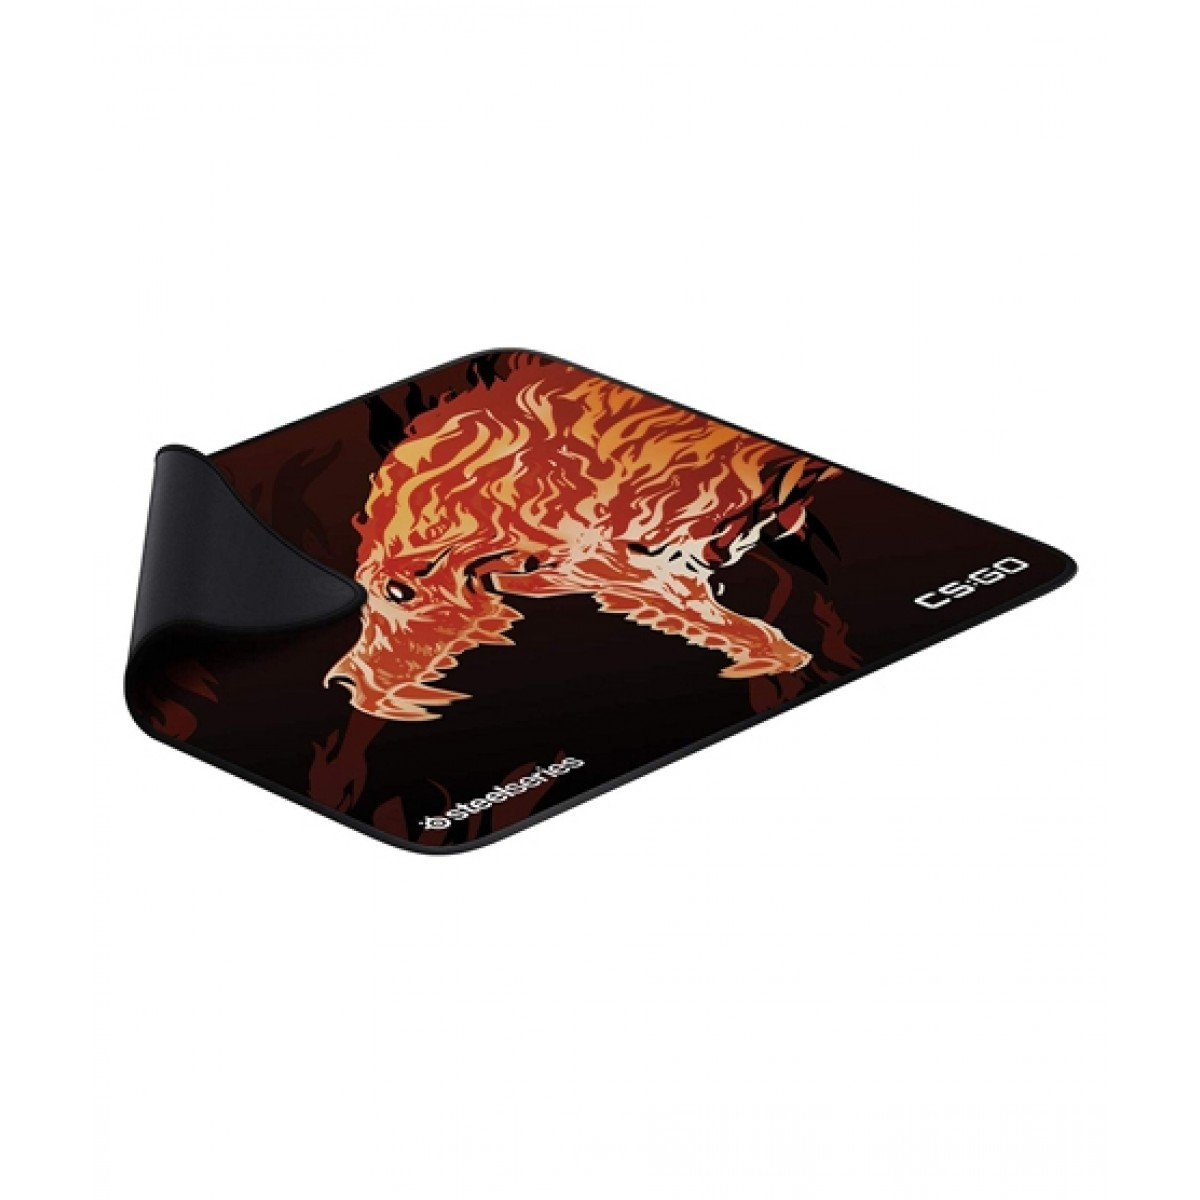 91259615e97 SteelSeries QcK+ Limited CS Go Howl Edition Gaming Mouse Pad Price in  Pakistan   Buy QcK+ CS Go Howl Gaming Mouse Pad   iShopping.pk